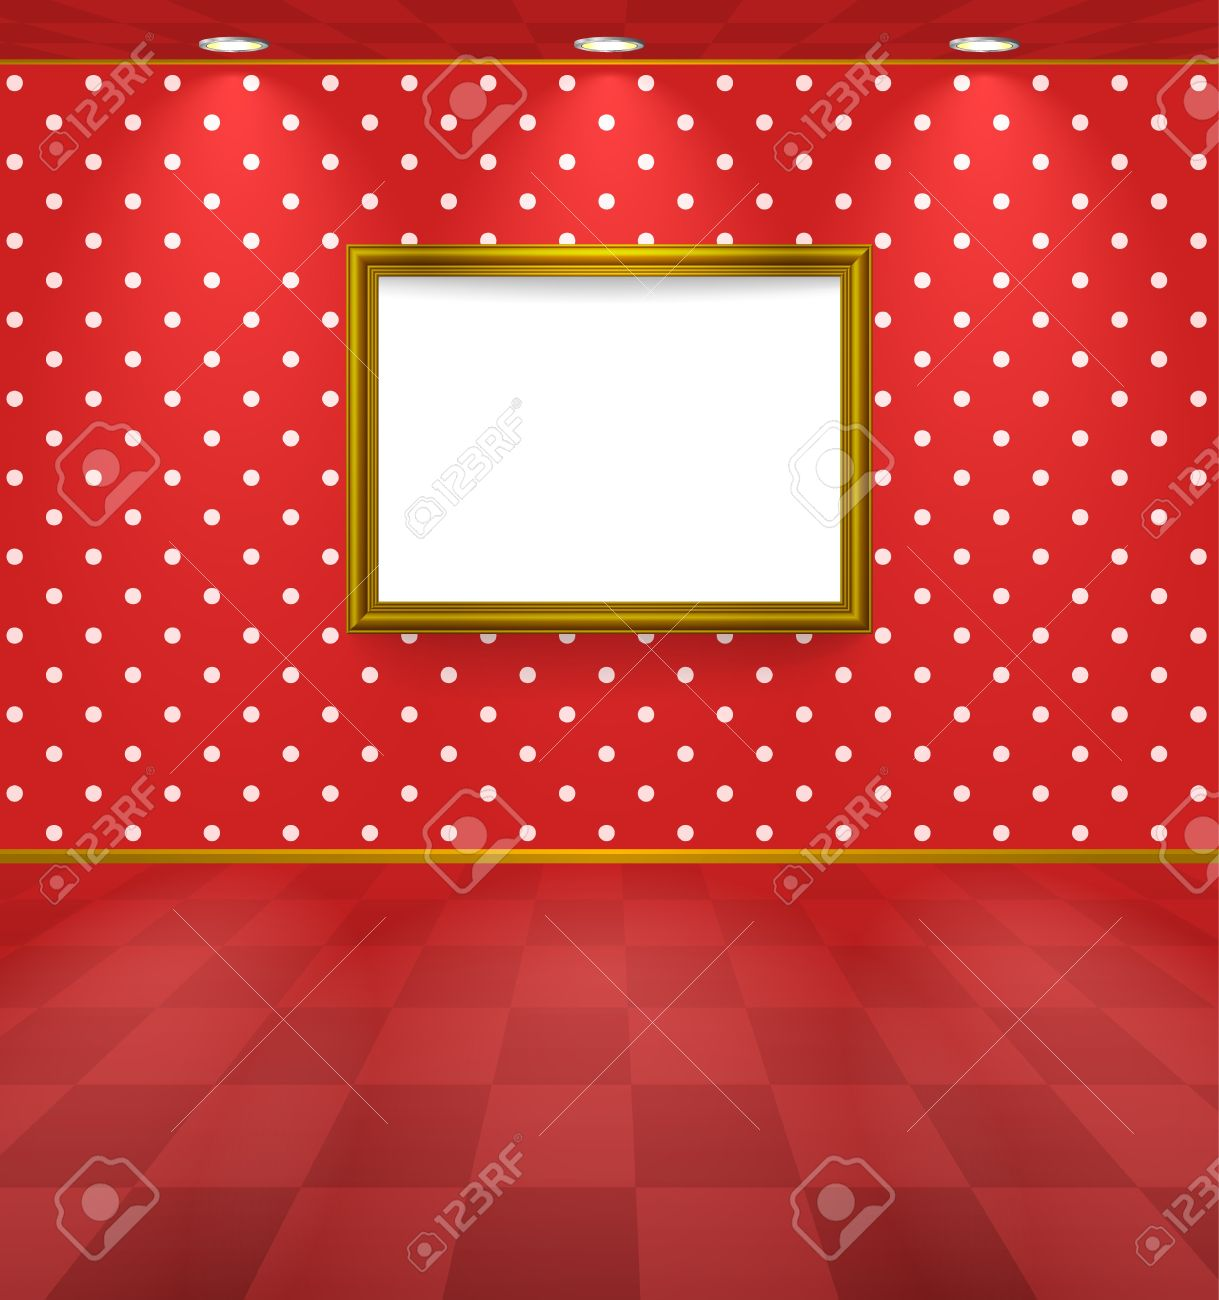 Room with frame and polka dot wallpaper Stock Vector - 11660956